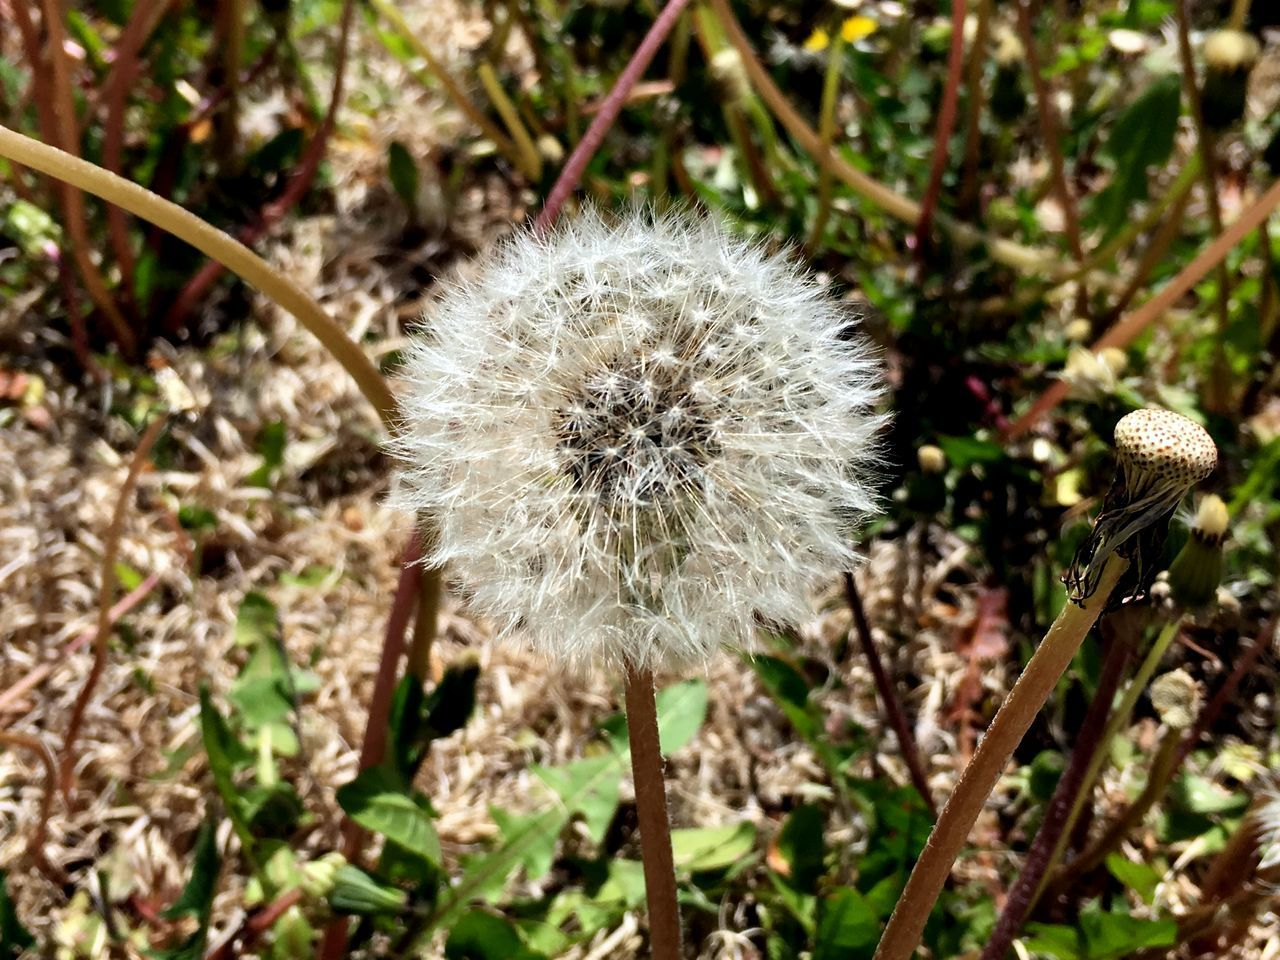 flower, nature, growth, dandelion, fragility, plant, uncultivated, flower head, wildflower, beauty in nature, seed, close-up, freshness, day, outdoors, no people